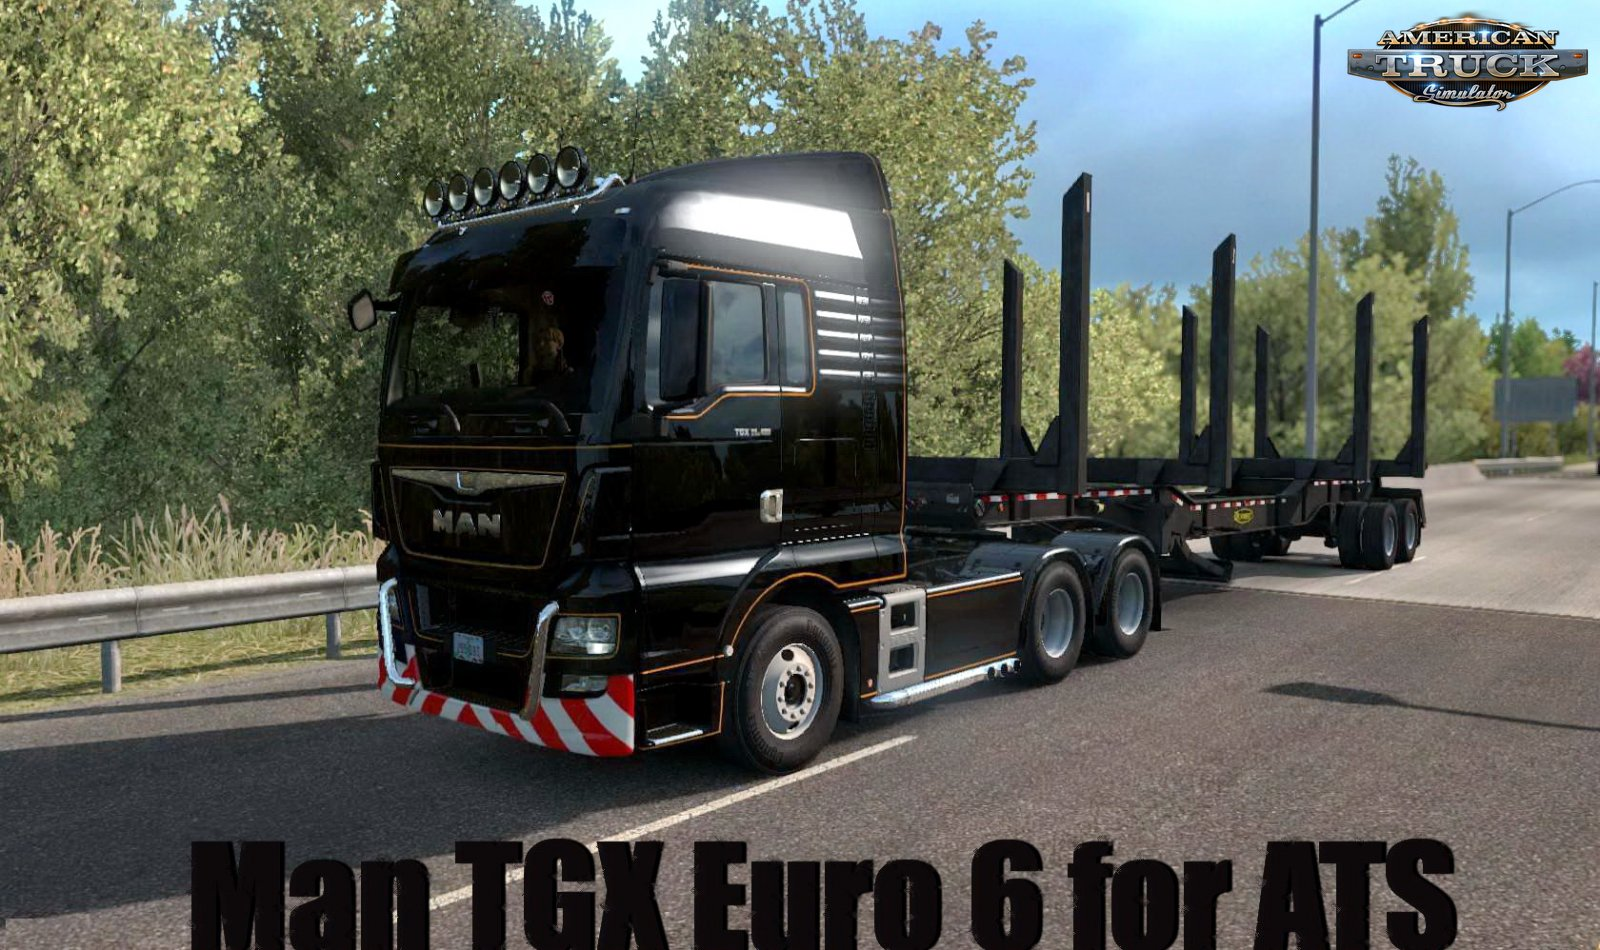 Man TGX Euro 6 + Interior v2.0 (1.35.x) for ATS